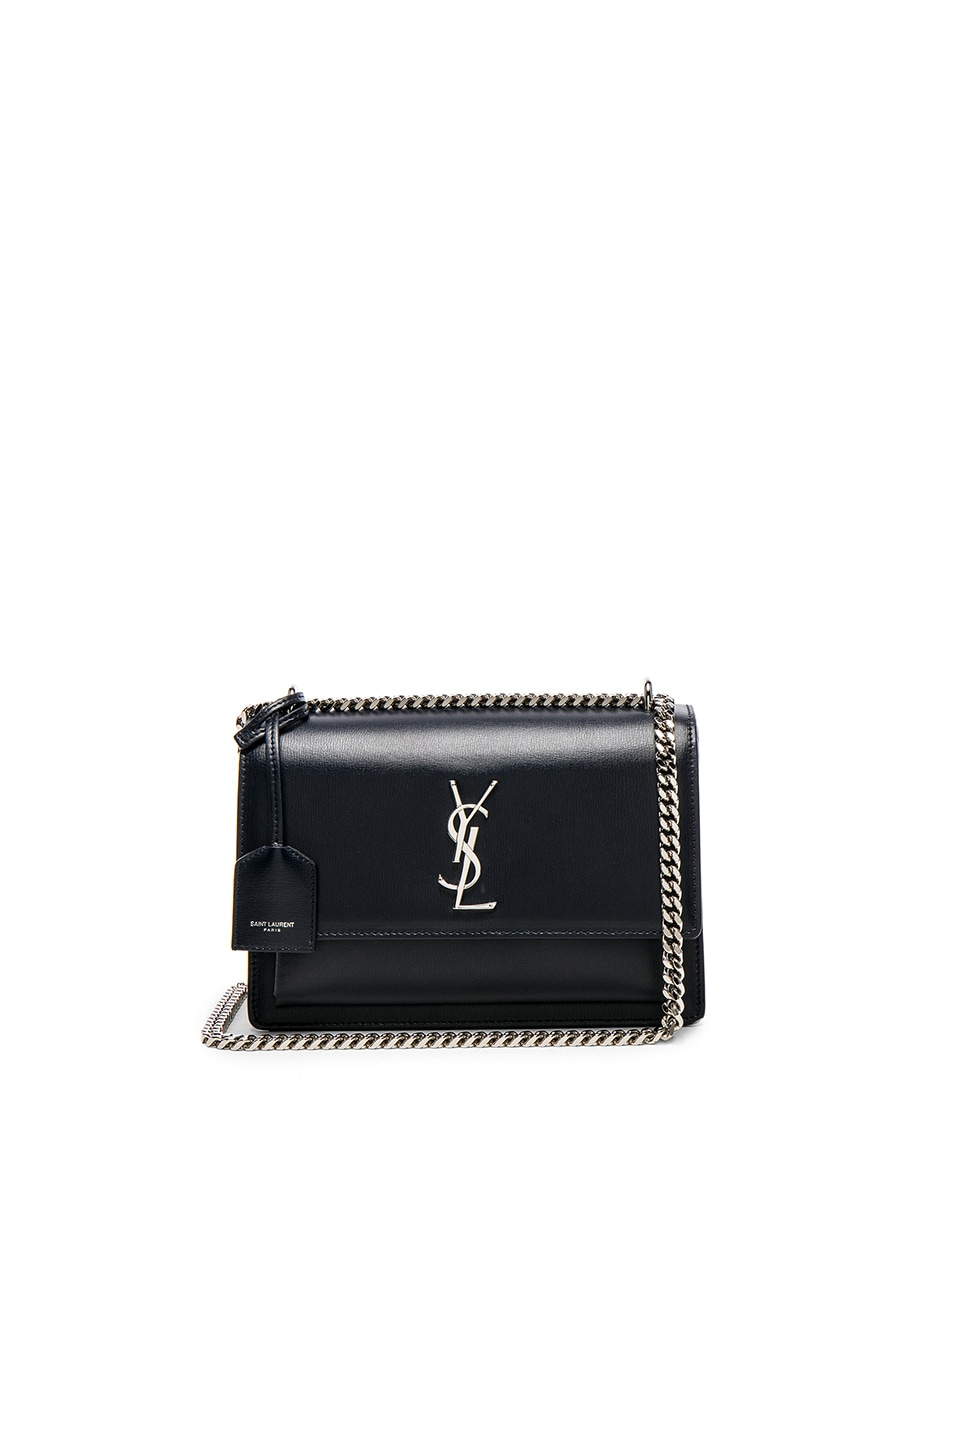 Image 1 of Saint Laurent Medium Monogramme Sunset Chain Bag in Deep Marine 1a7090824795e